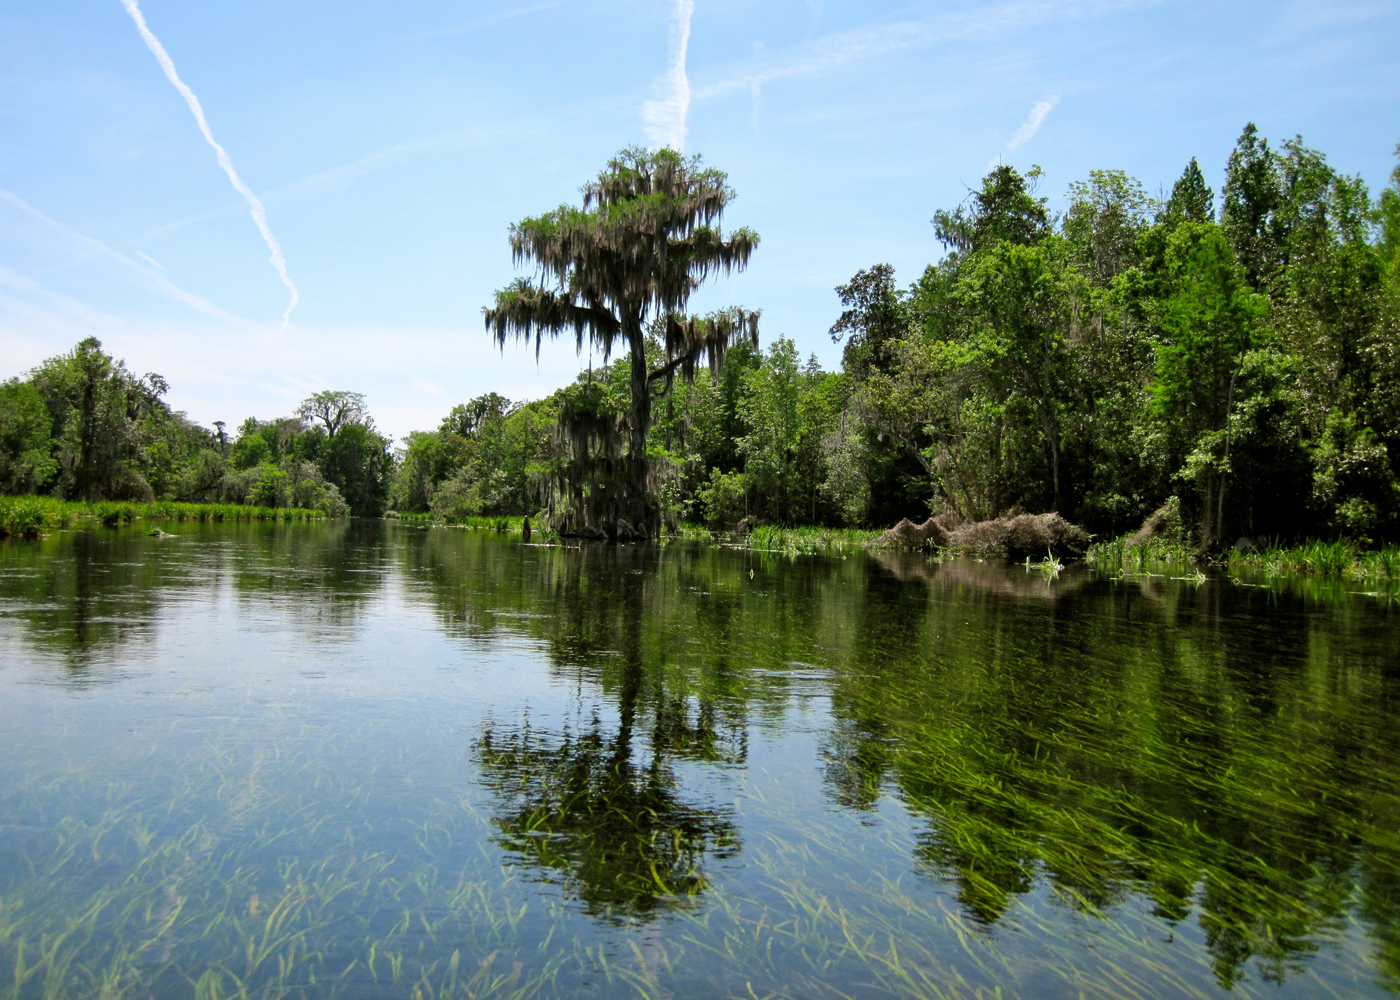 Florida cool springs wild rivers sierra club outings for Florida cool